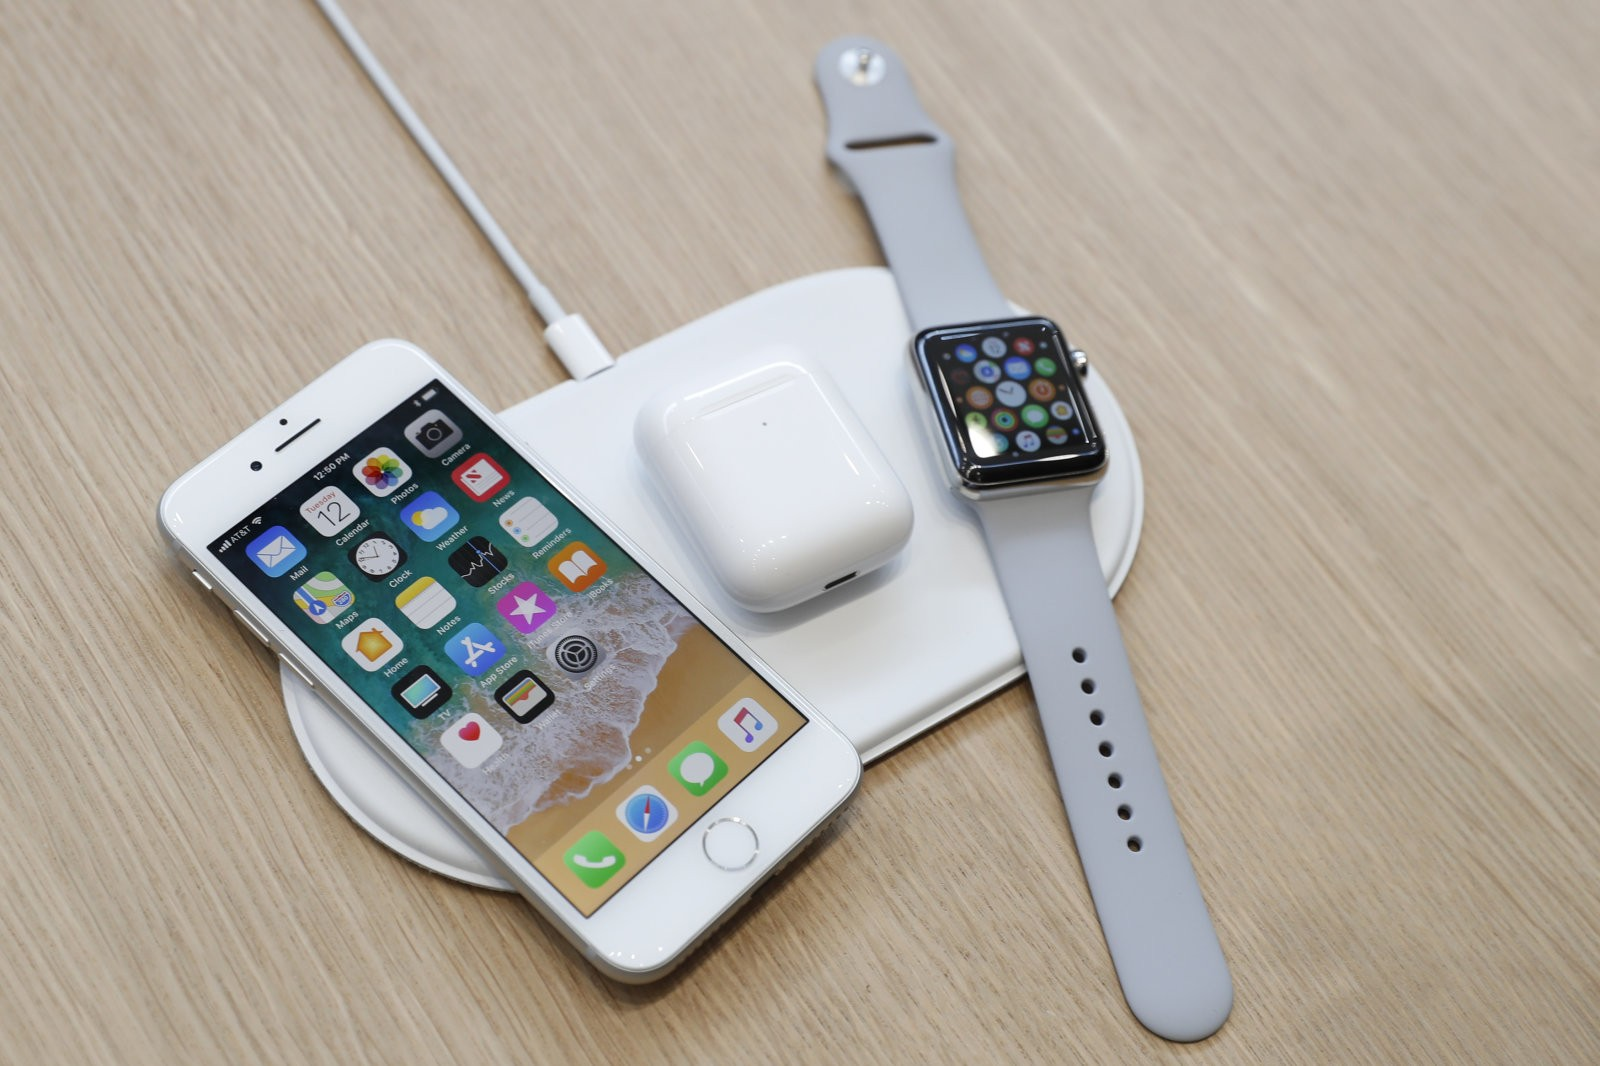 Apple To Supposedly Launch AirPower Wireless Charging Mat By September 2018